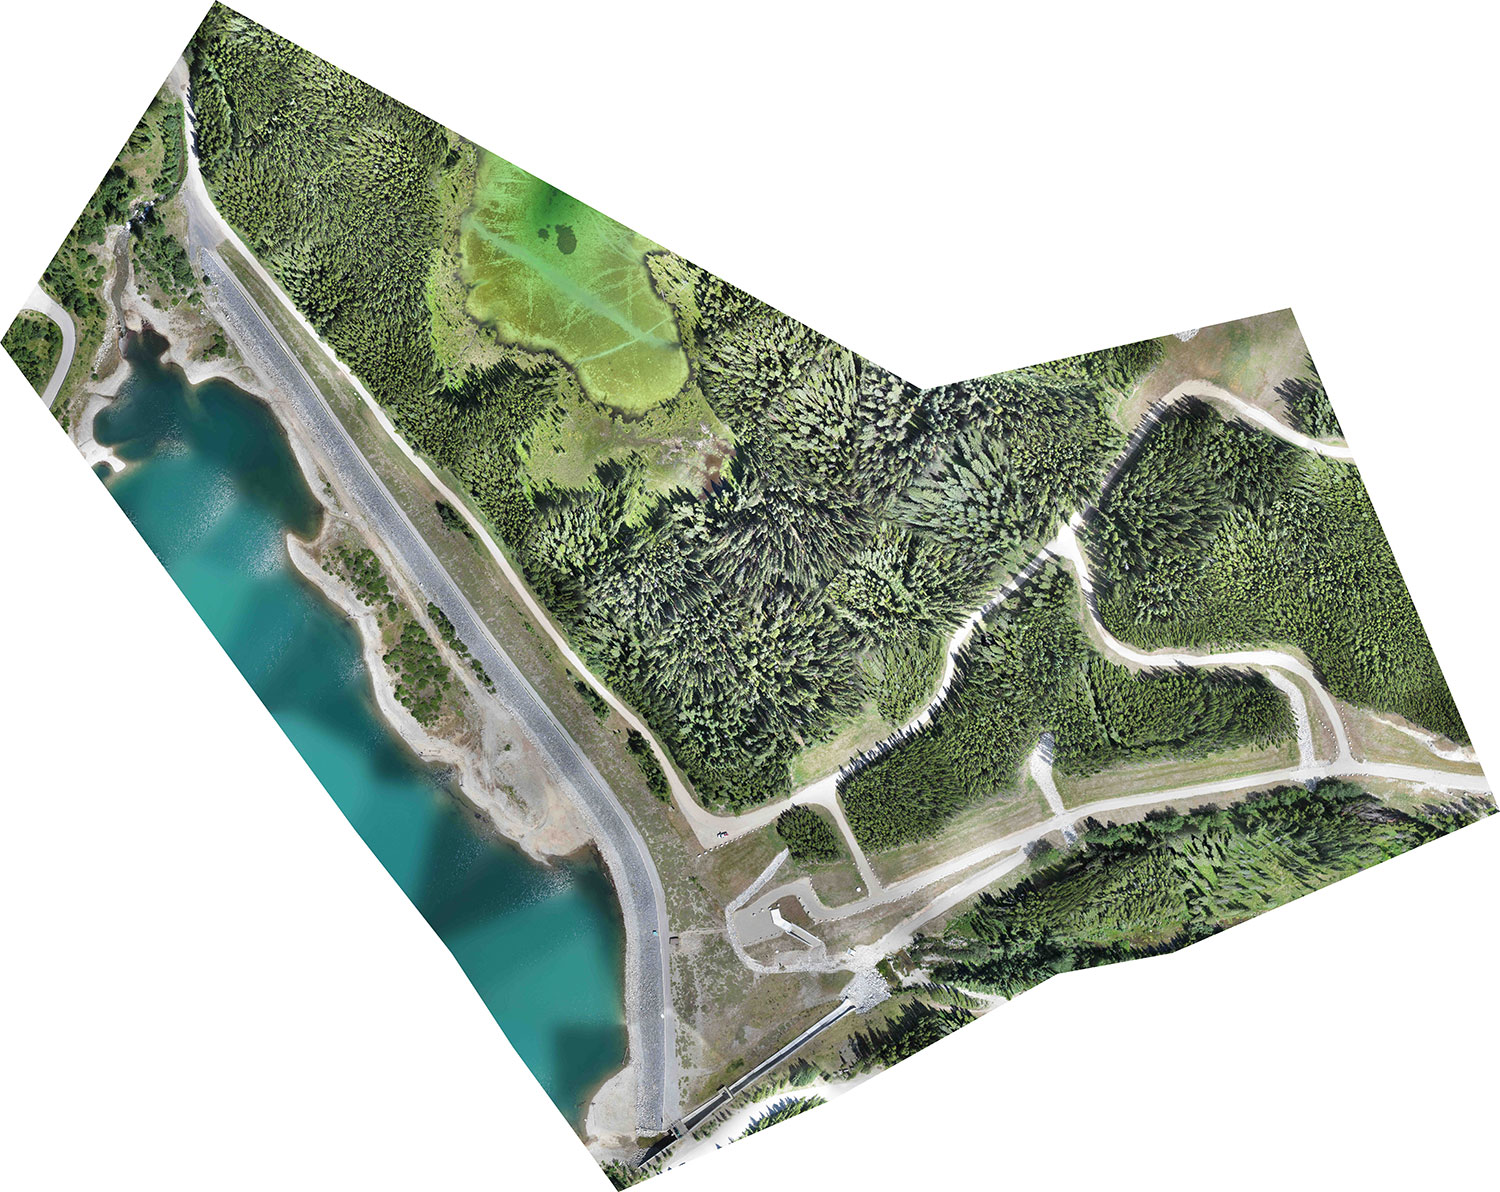 Land-Surveying-with-Drones-Pocaterra-web